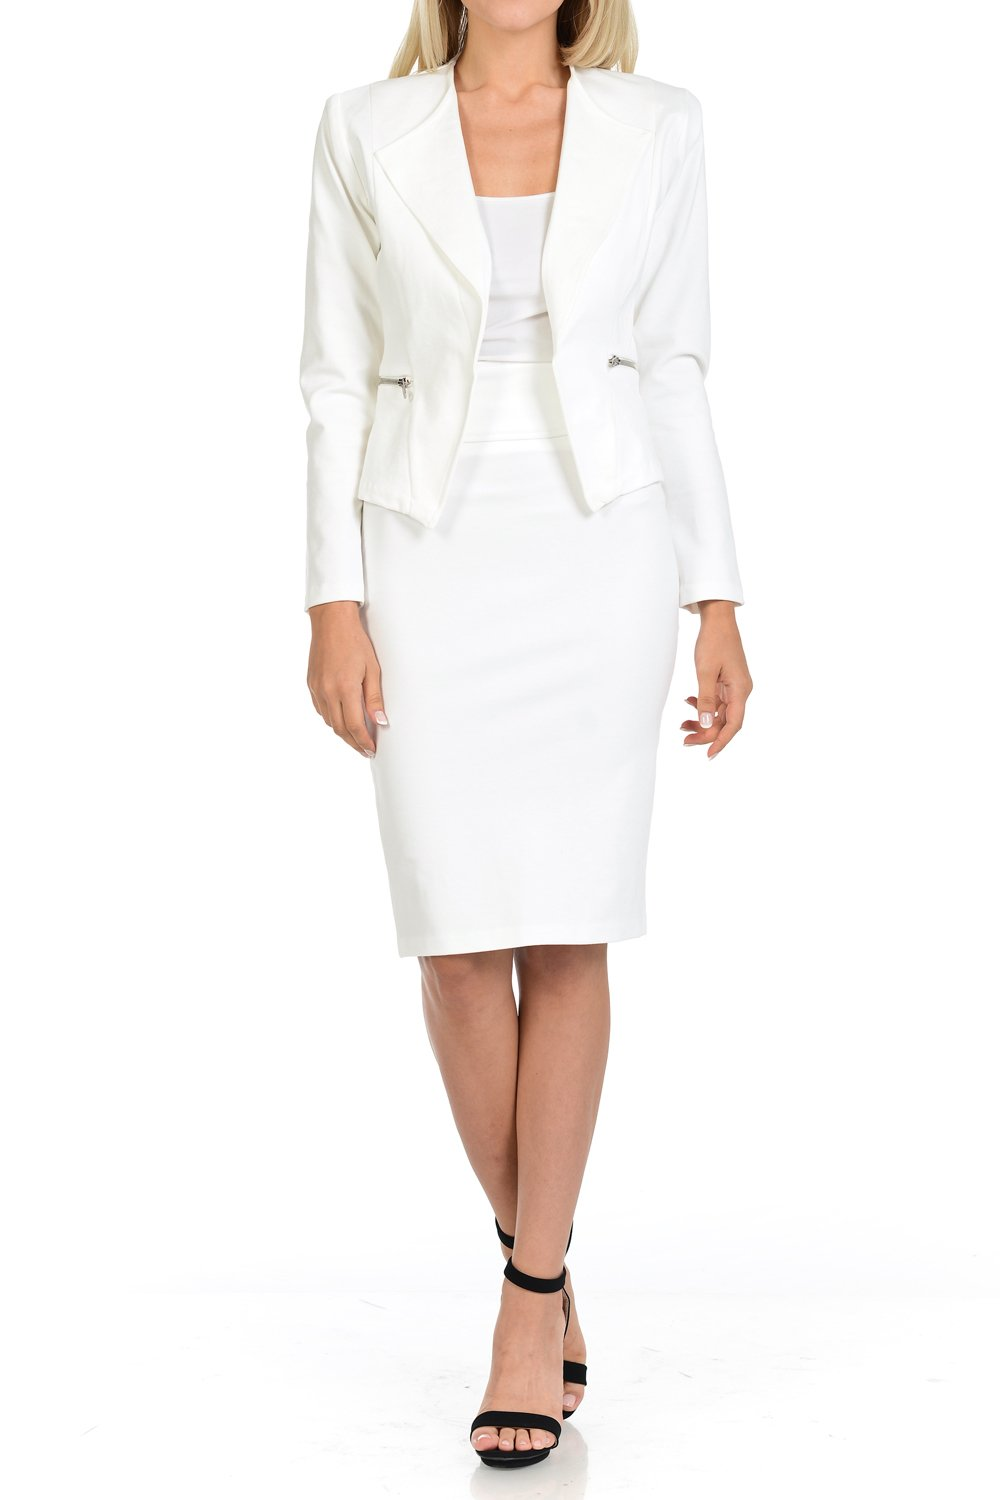 Sweethabit Womens Premium Fabric Office Wear to Work Solid Skirt, Pants Suit Set(3087N_White-XL).